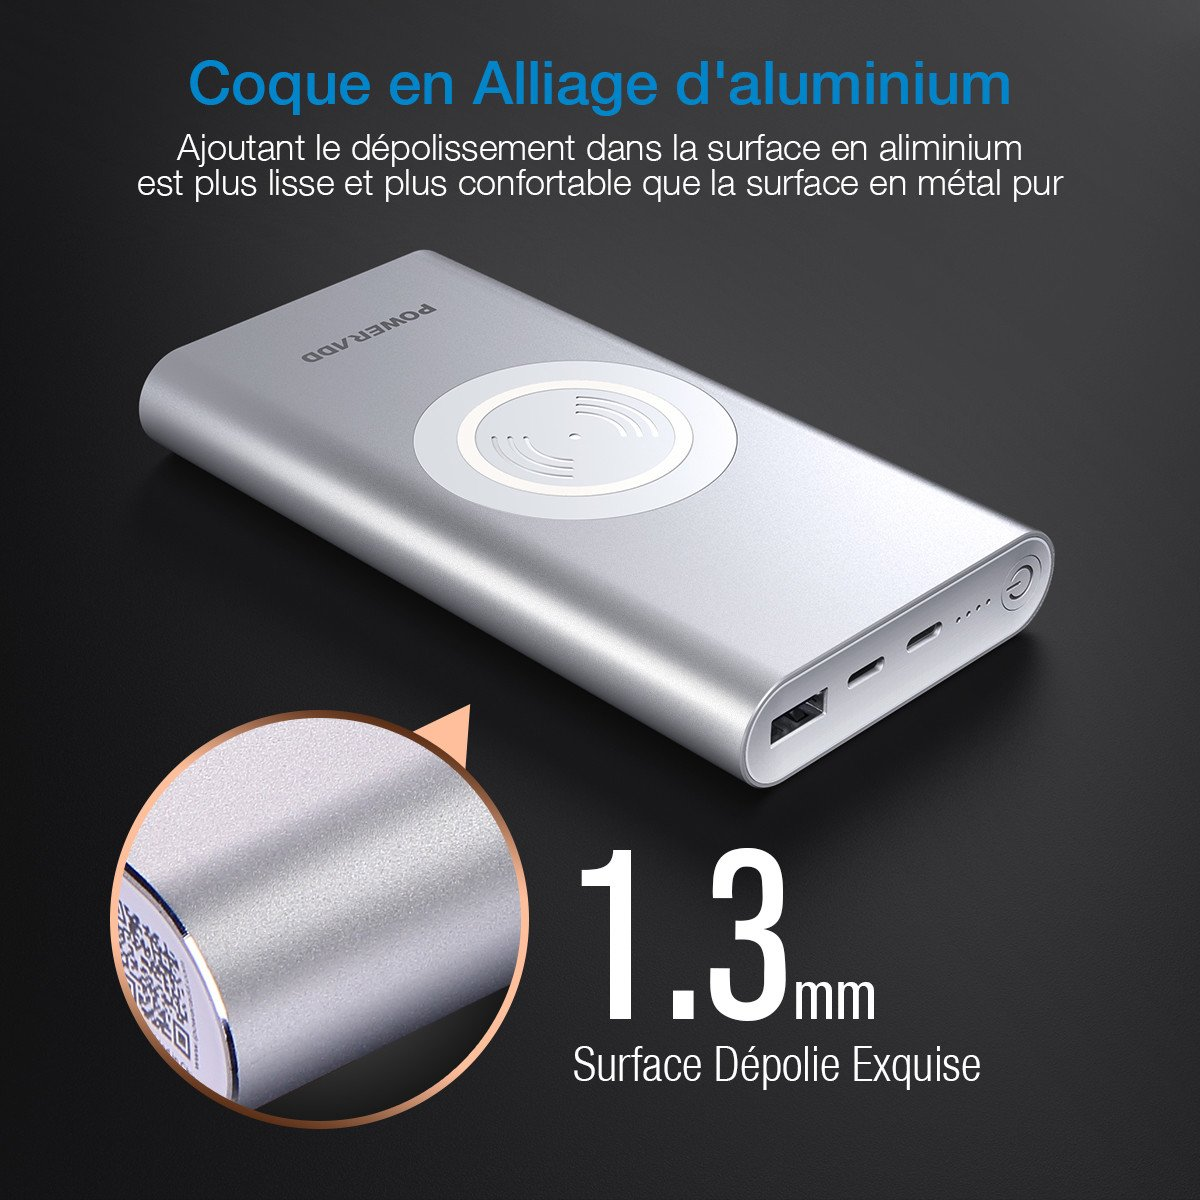 POWERADD Batterie Externe à Induction sans Fil 10000mAh en Alliage d\'Aluminium avec Lightning et Type C Charge Rapide pour iPhone8 iPhone x Galaxy Nexus - Argent